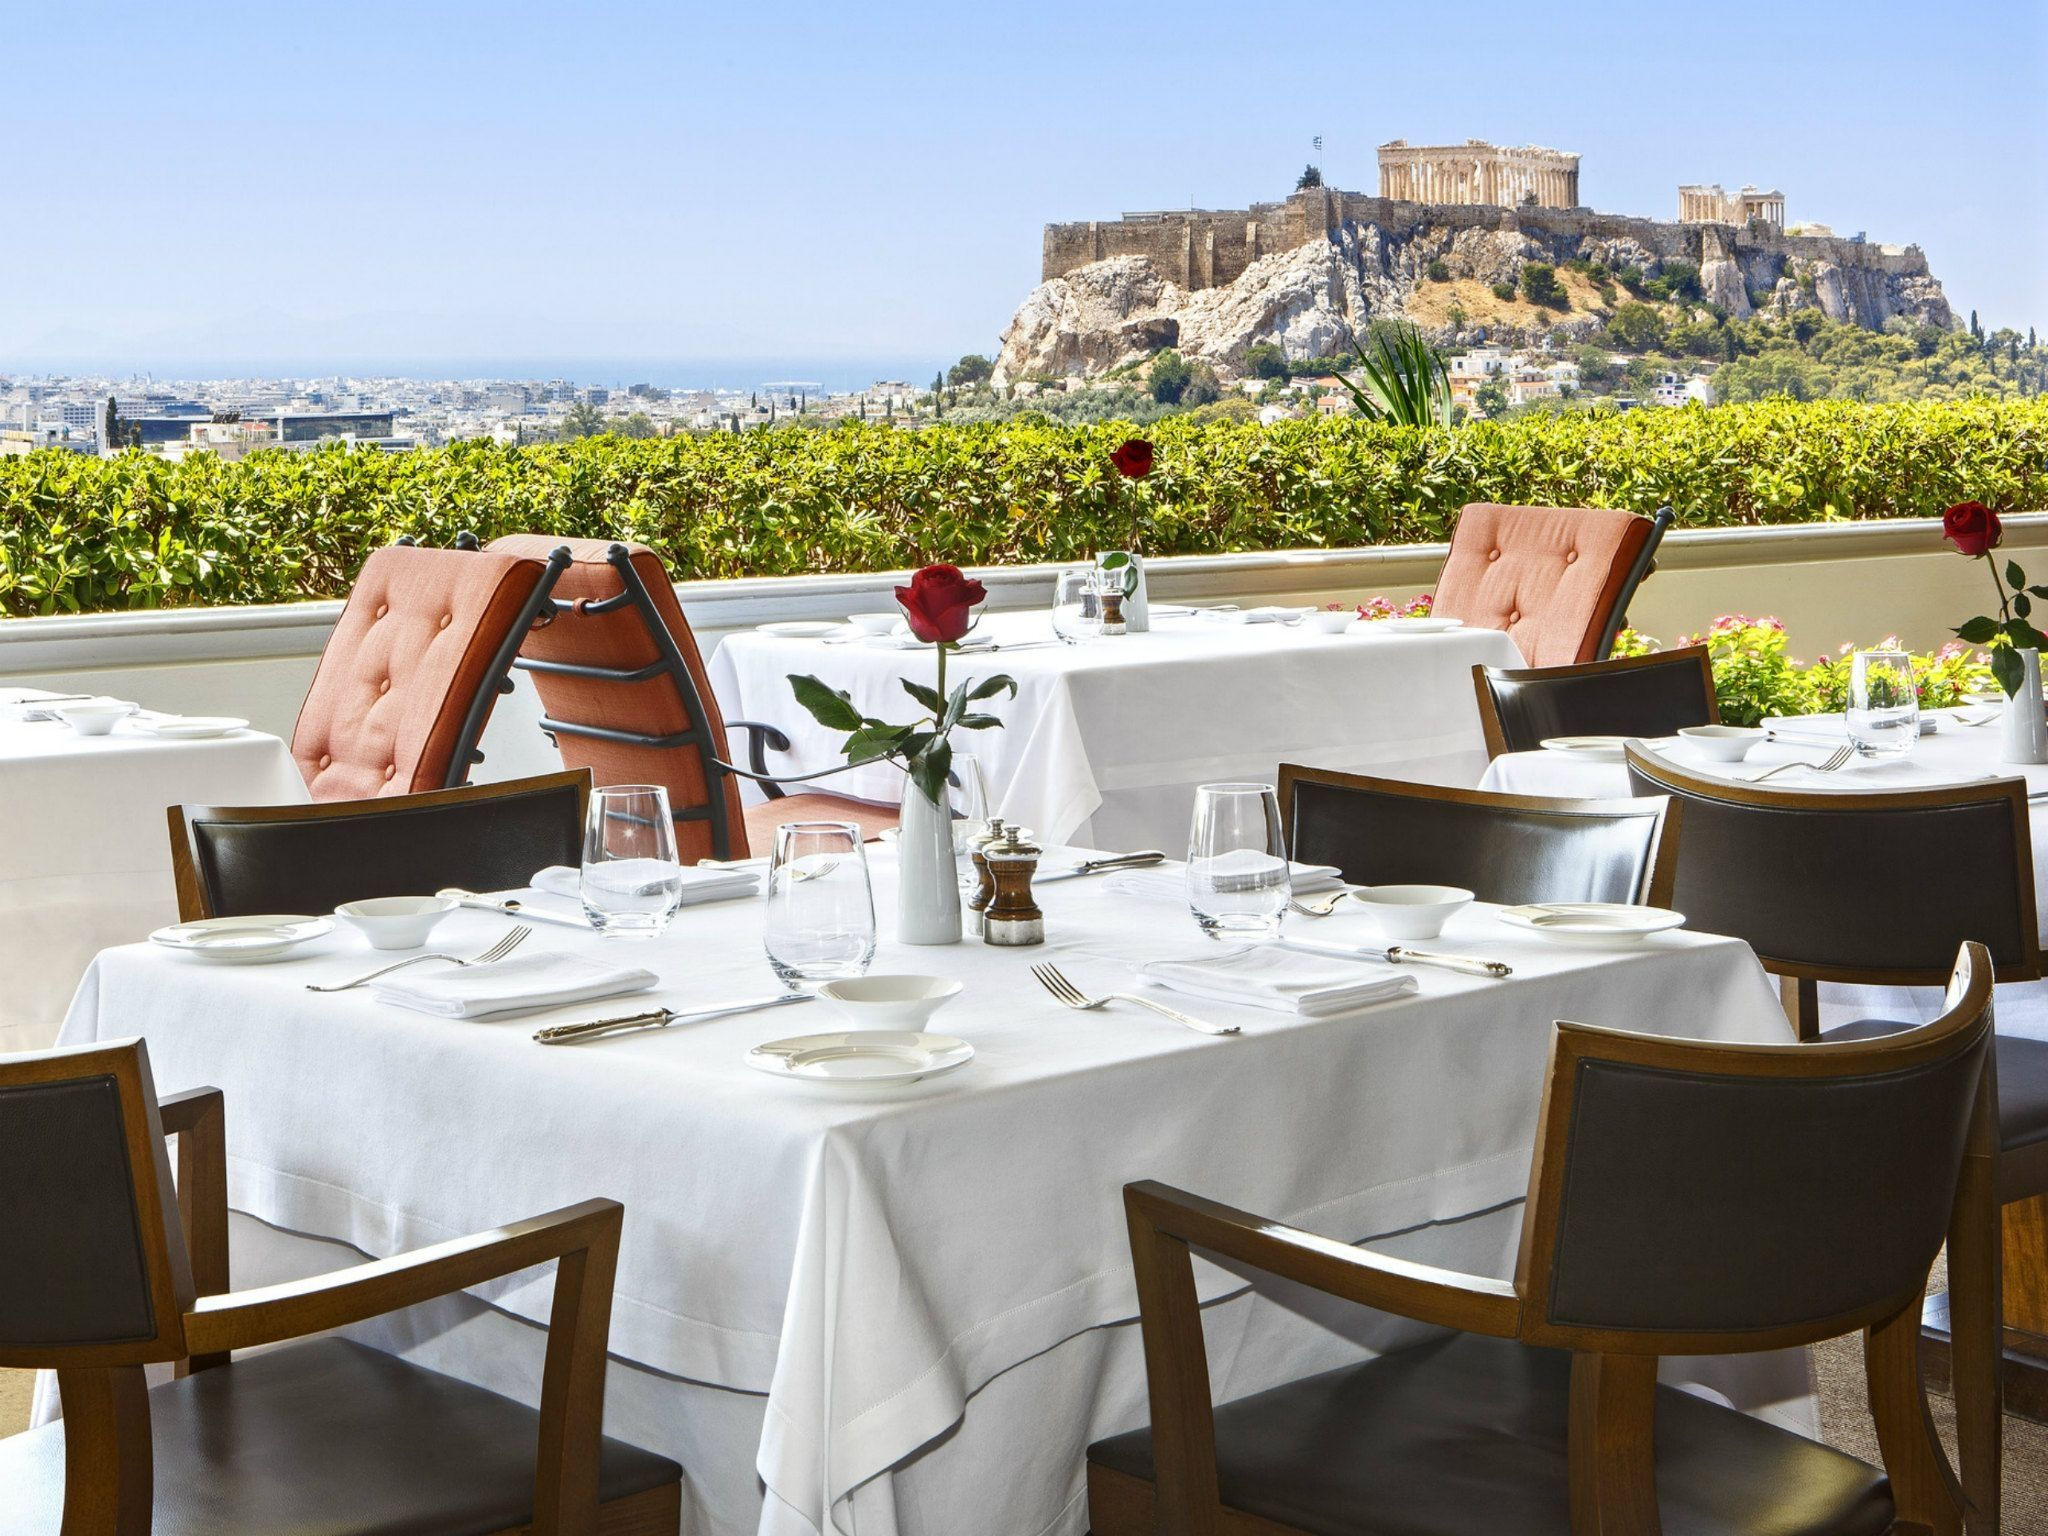 GB-Roof-Garden-Restaurant-at-Hotel-Grande-Bretagne-in-Athens-roof-top-view-to-Acropolis